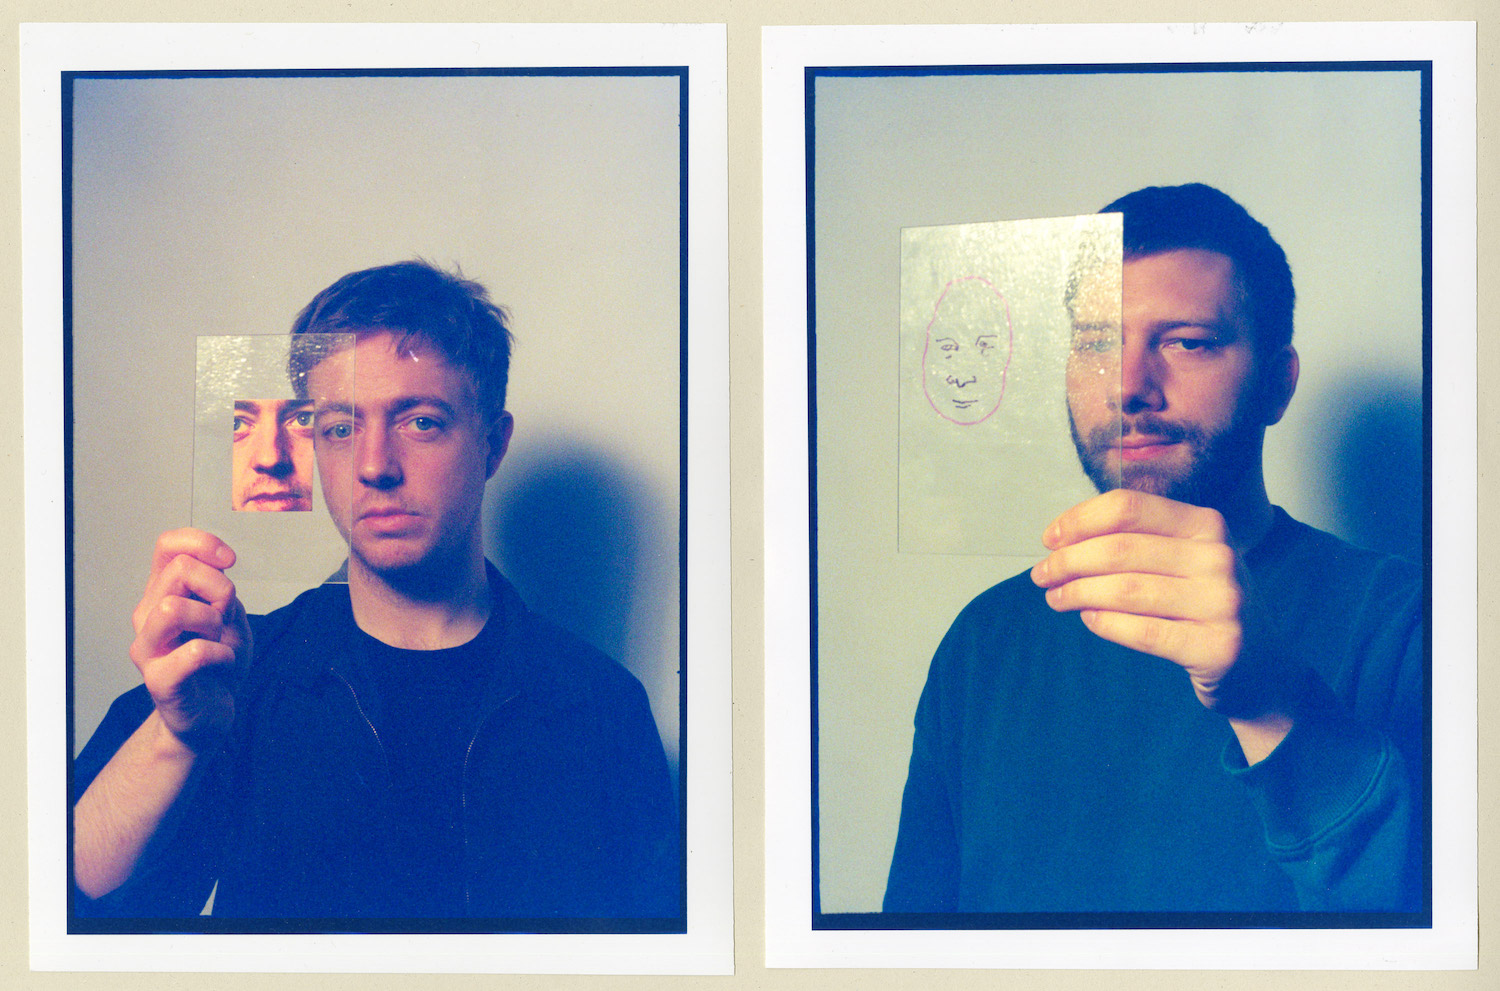 Mount Kimbie - New 2